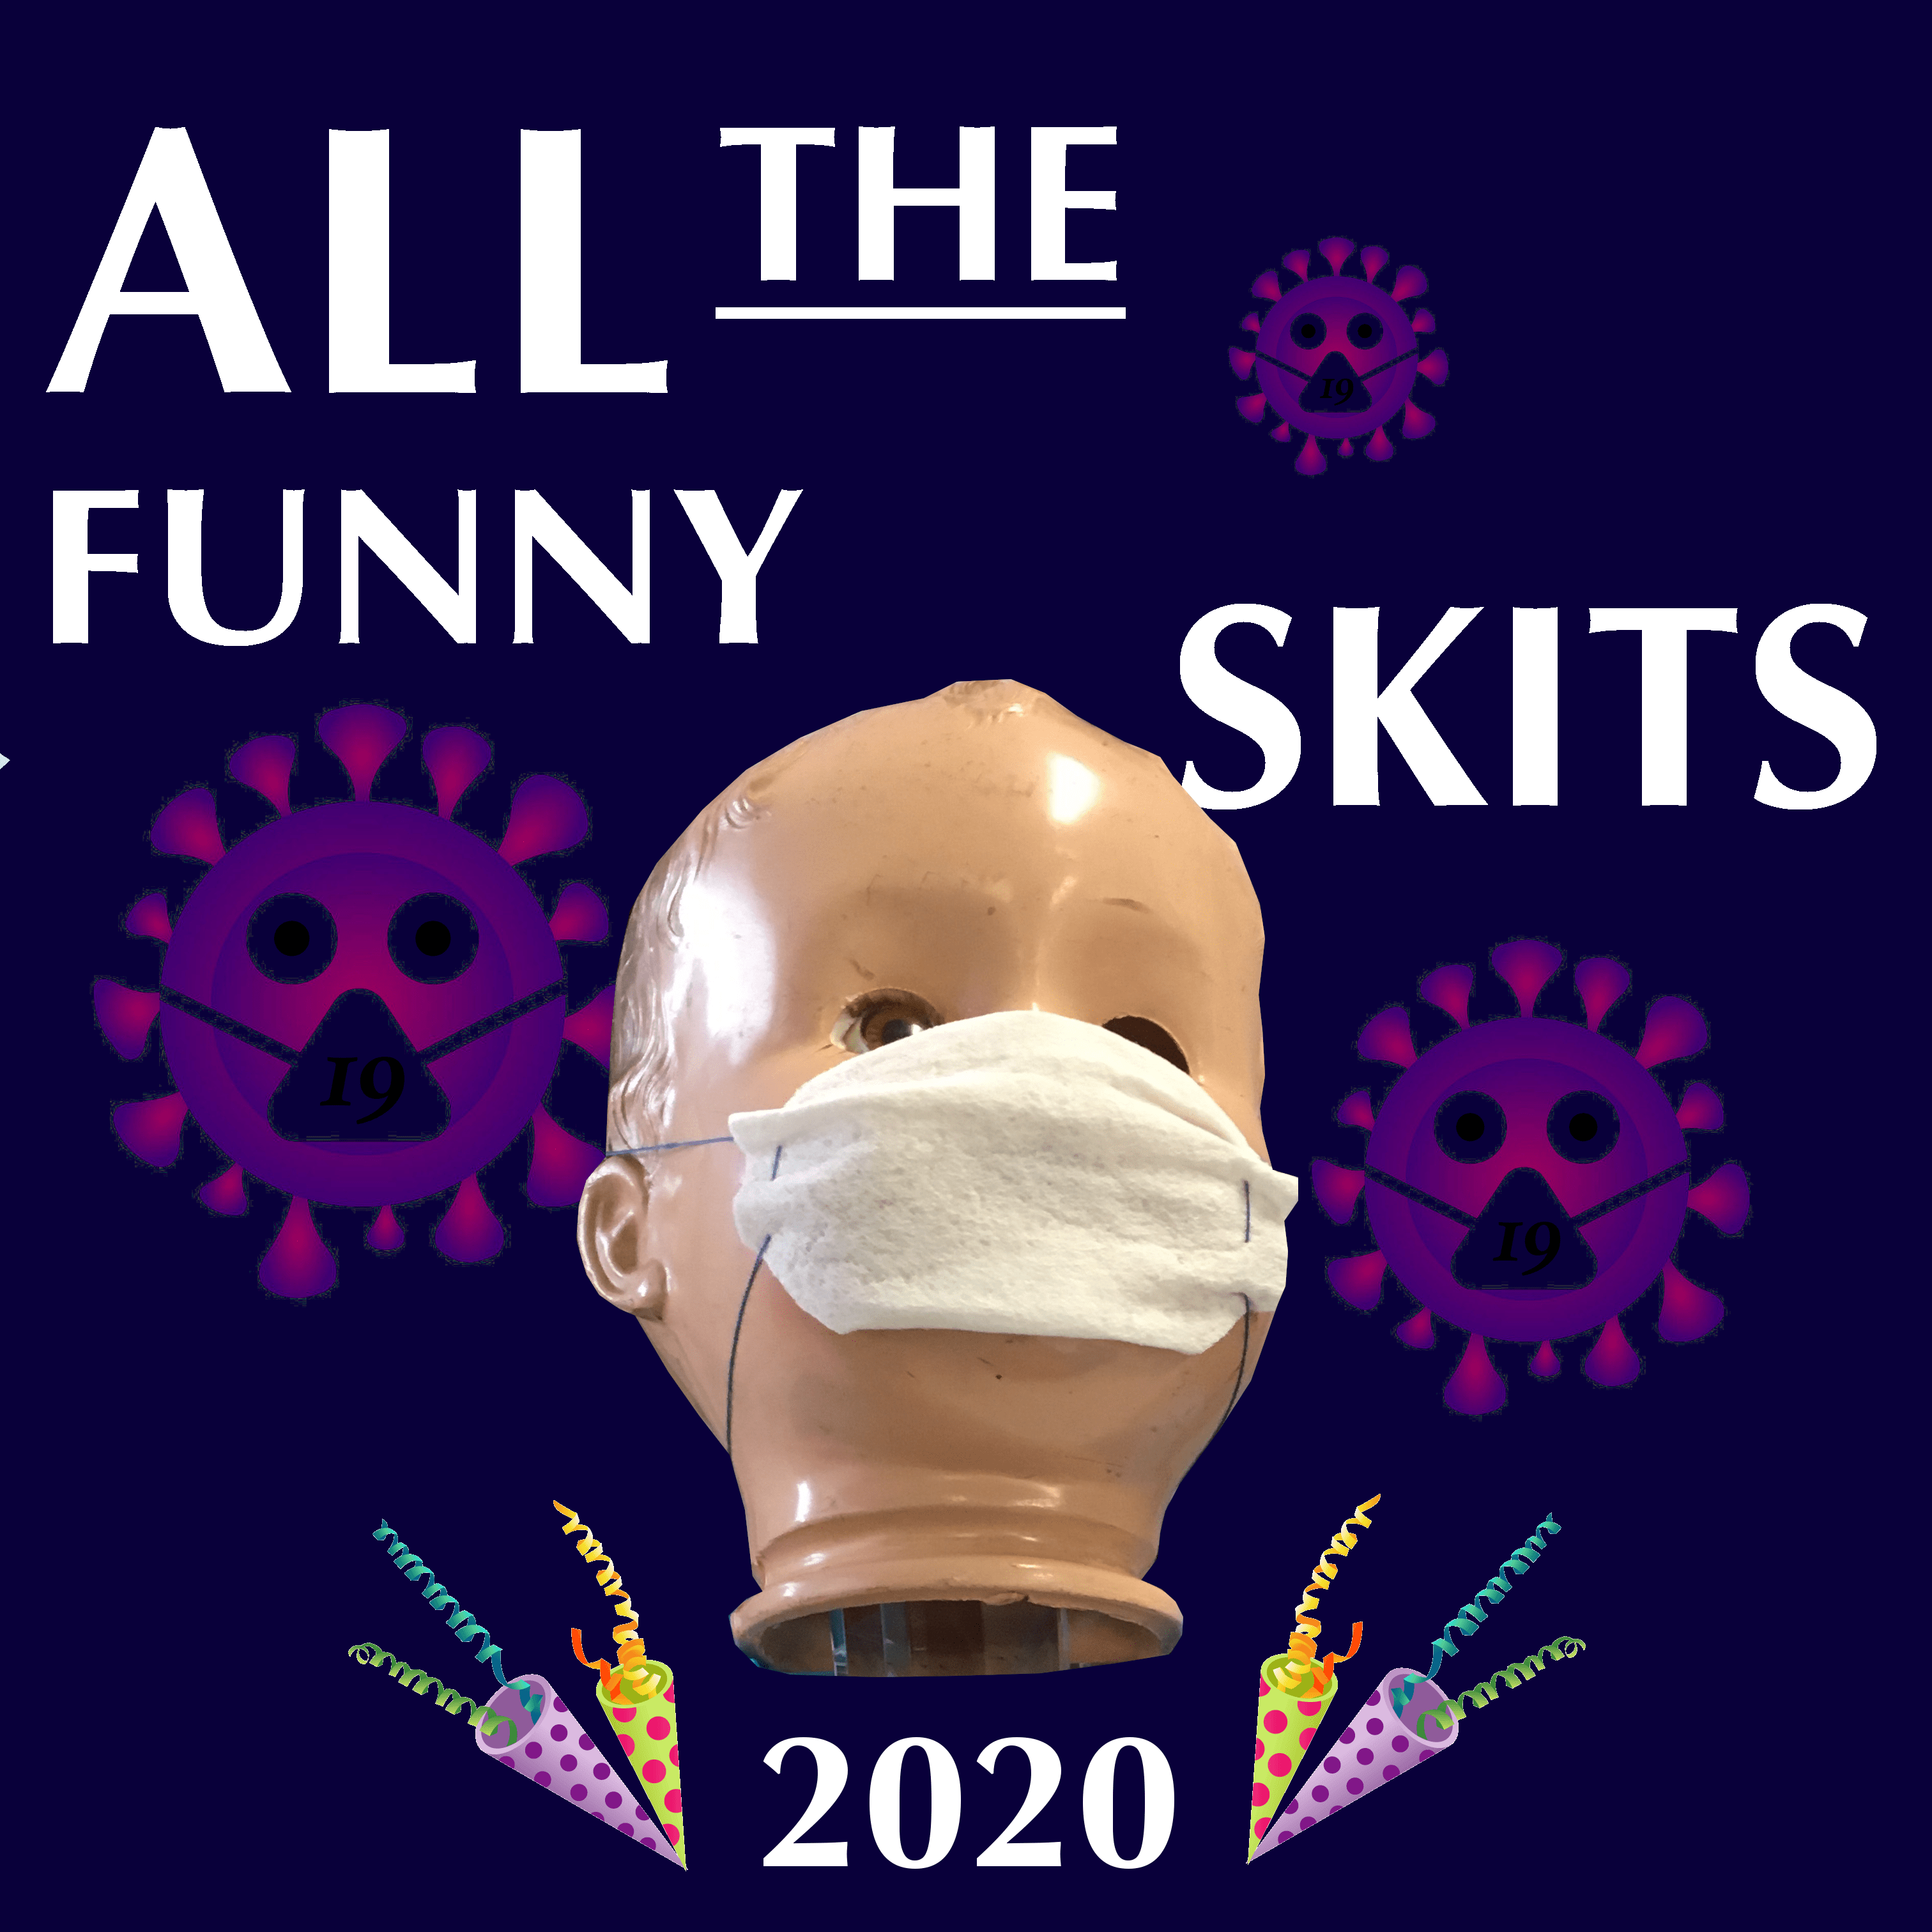 Funny Skits Compilation 2020 (New Years Special)